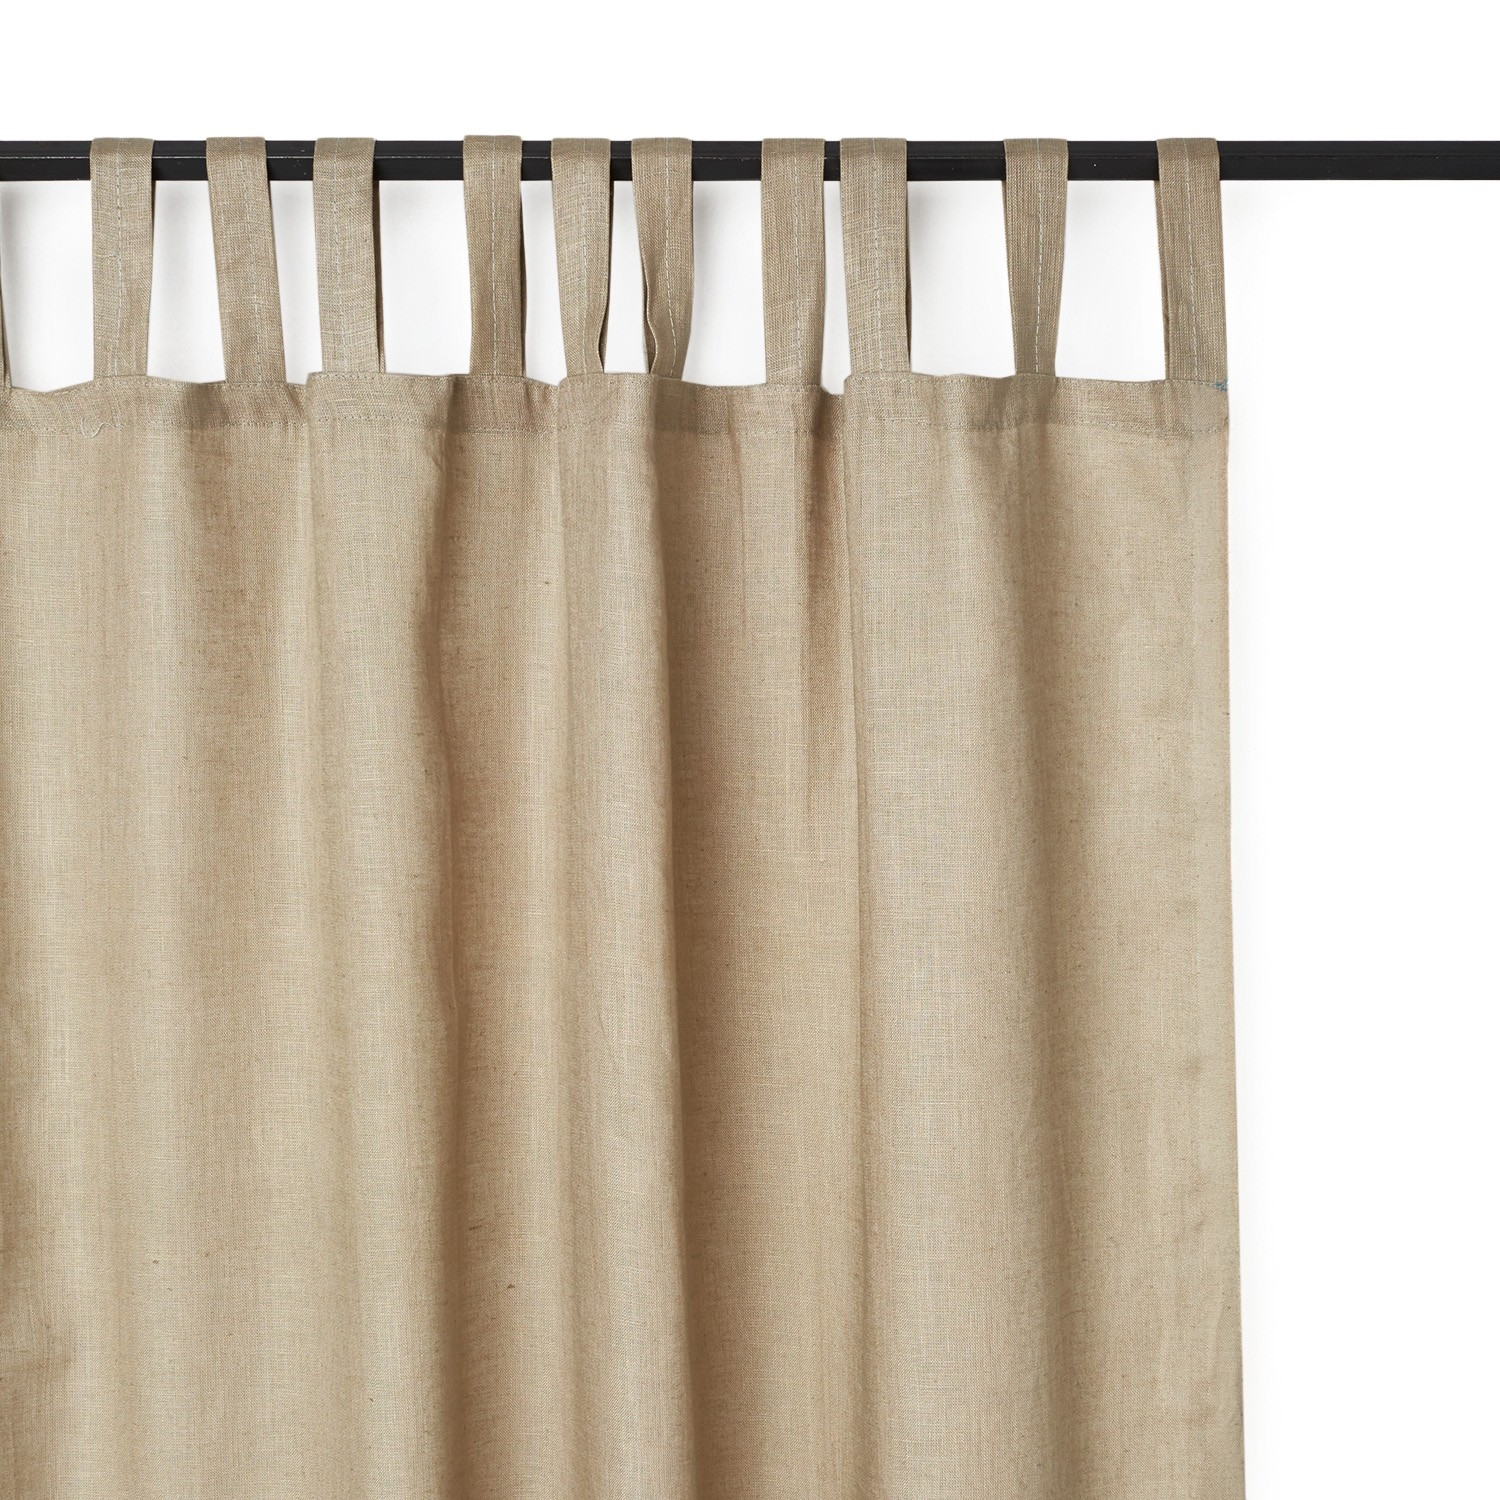 Varanasi Linen Curtain Gray Throughout Plain Linen Curtains (Image 15 of 15)